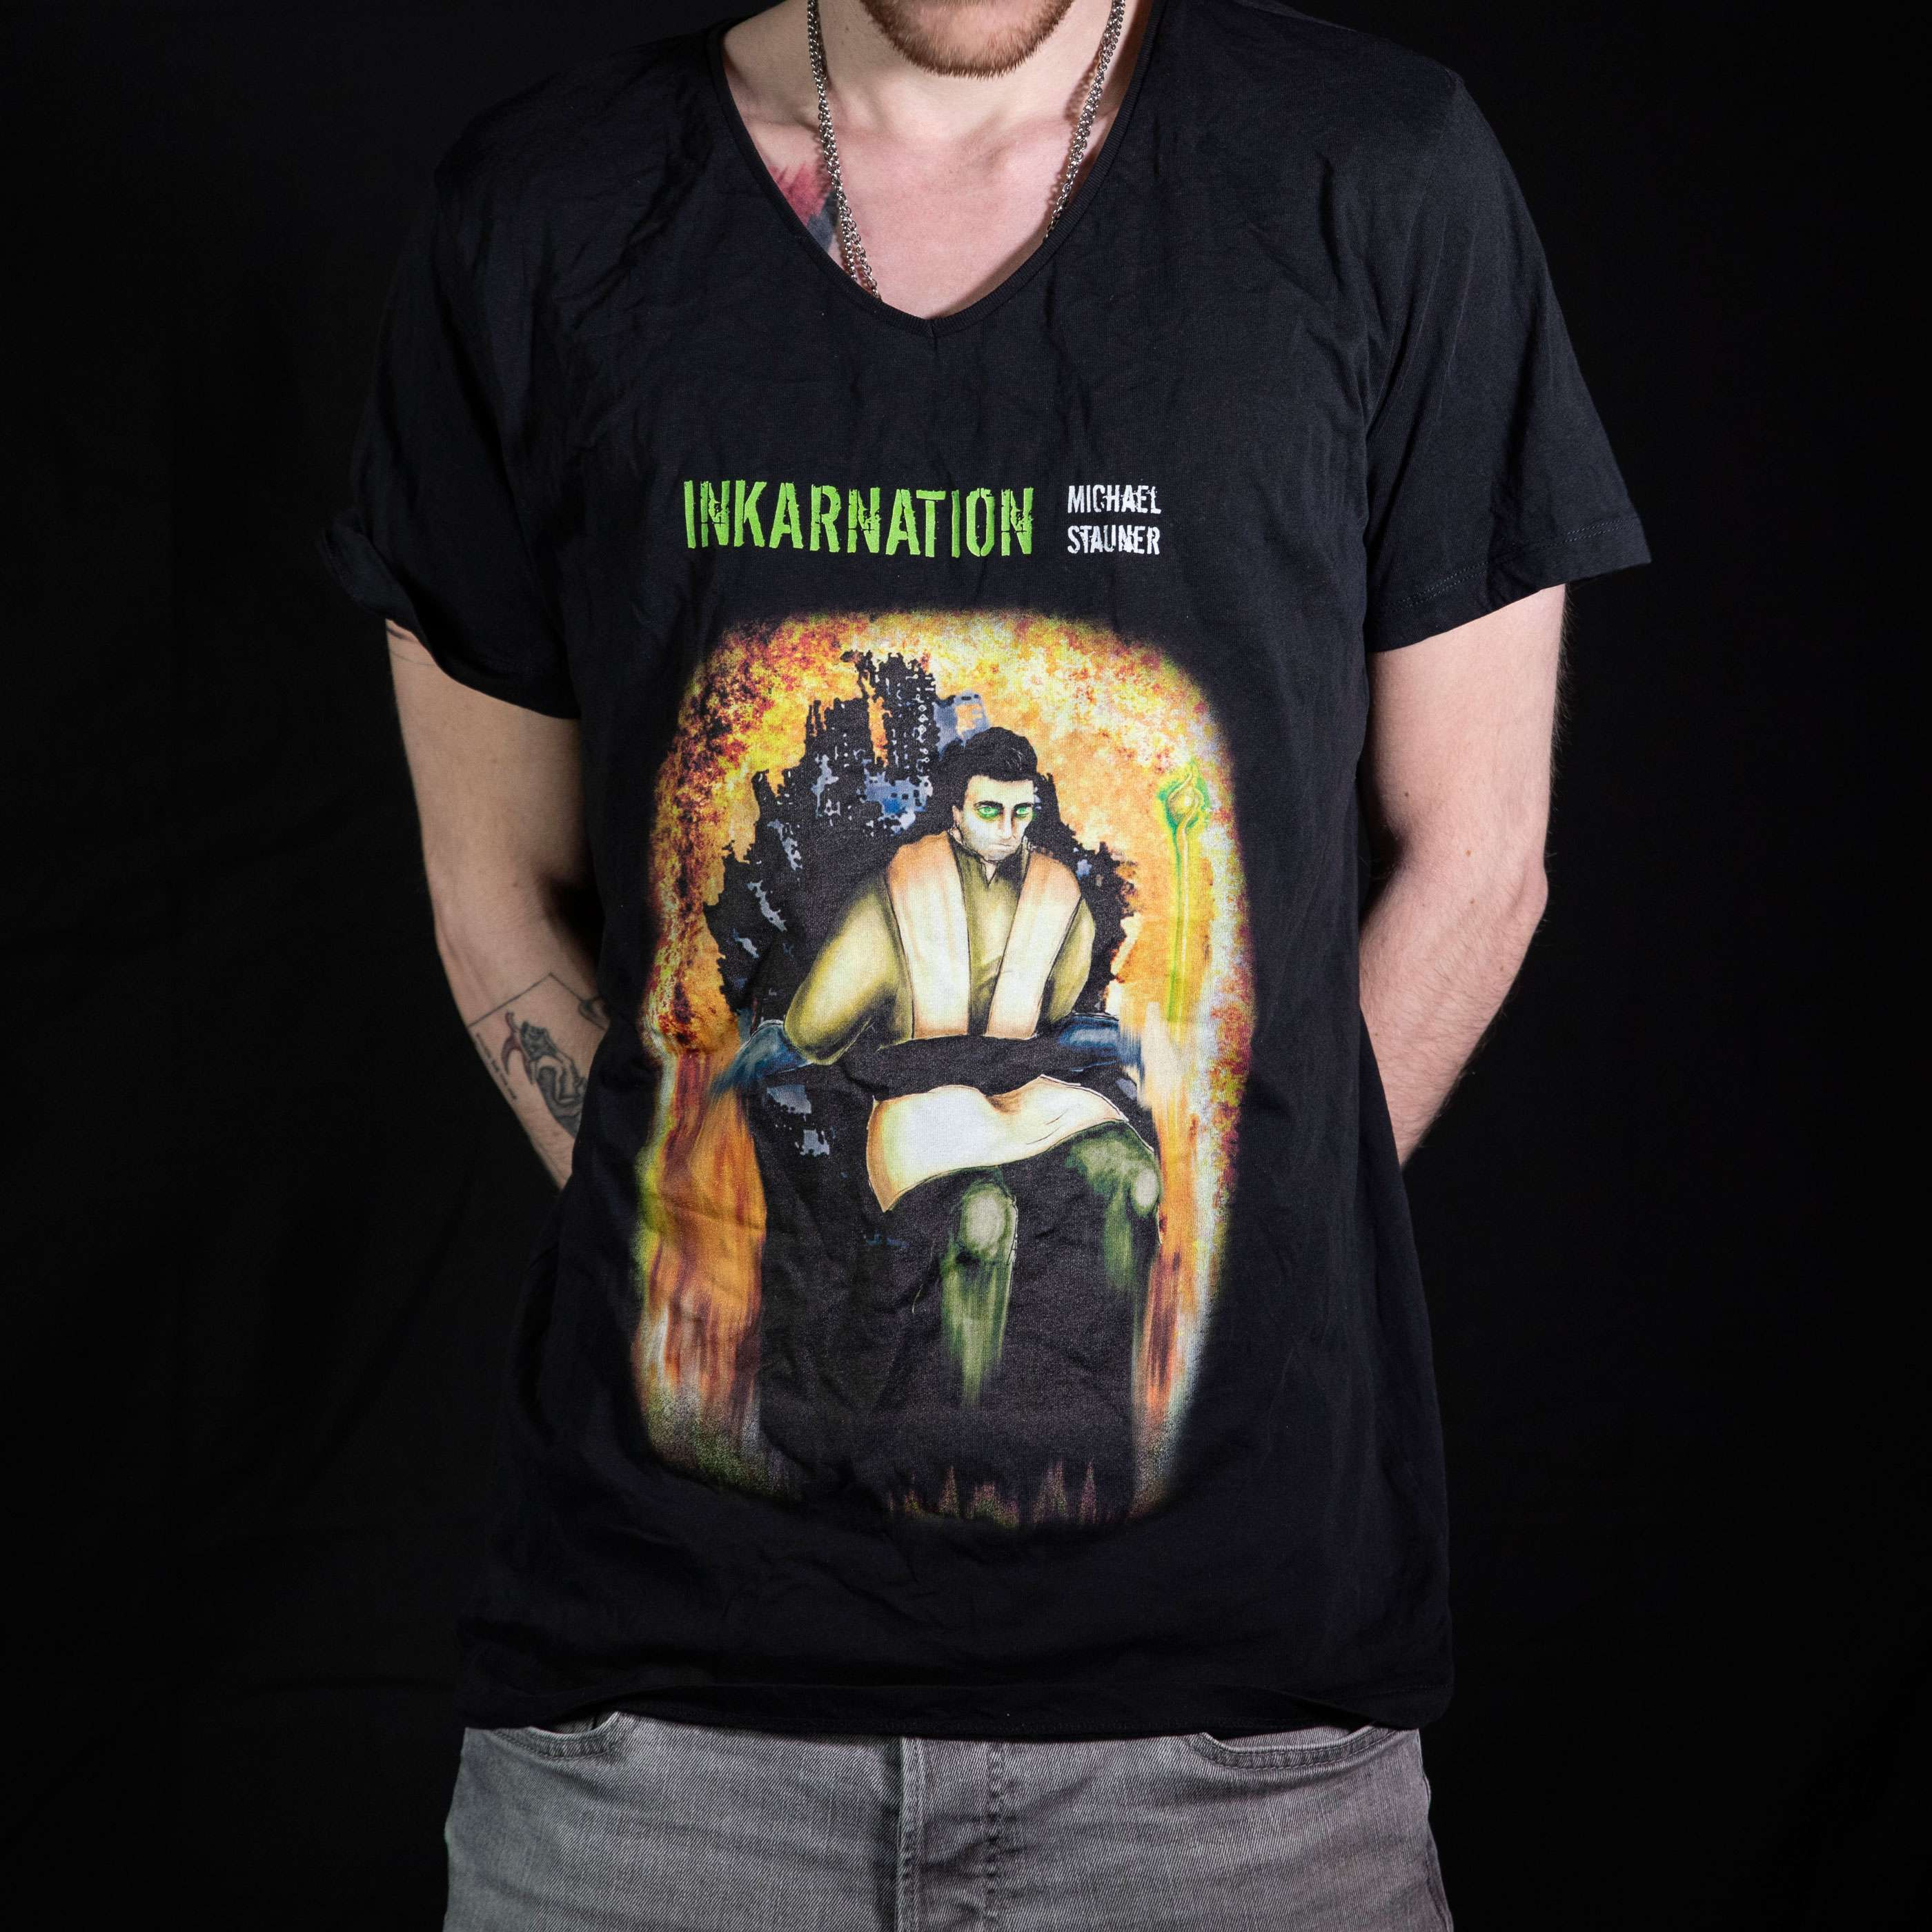 michael-stauner-merchandise-inkarnation-shirt-man.jpg